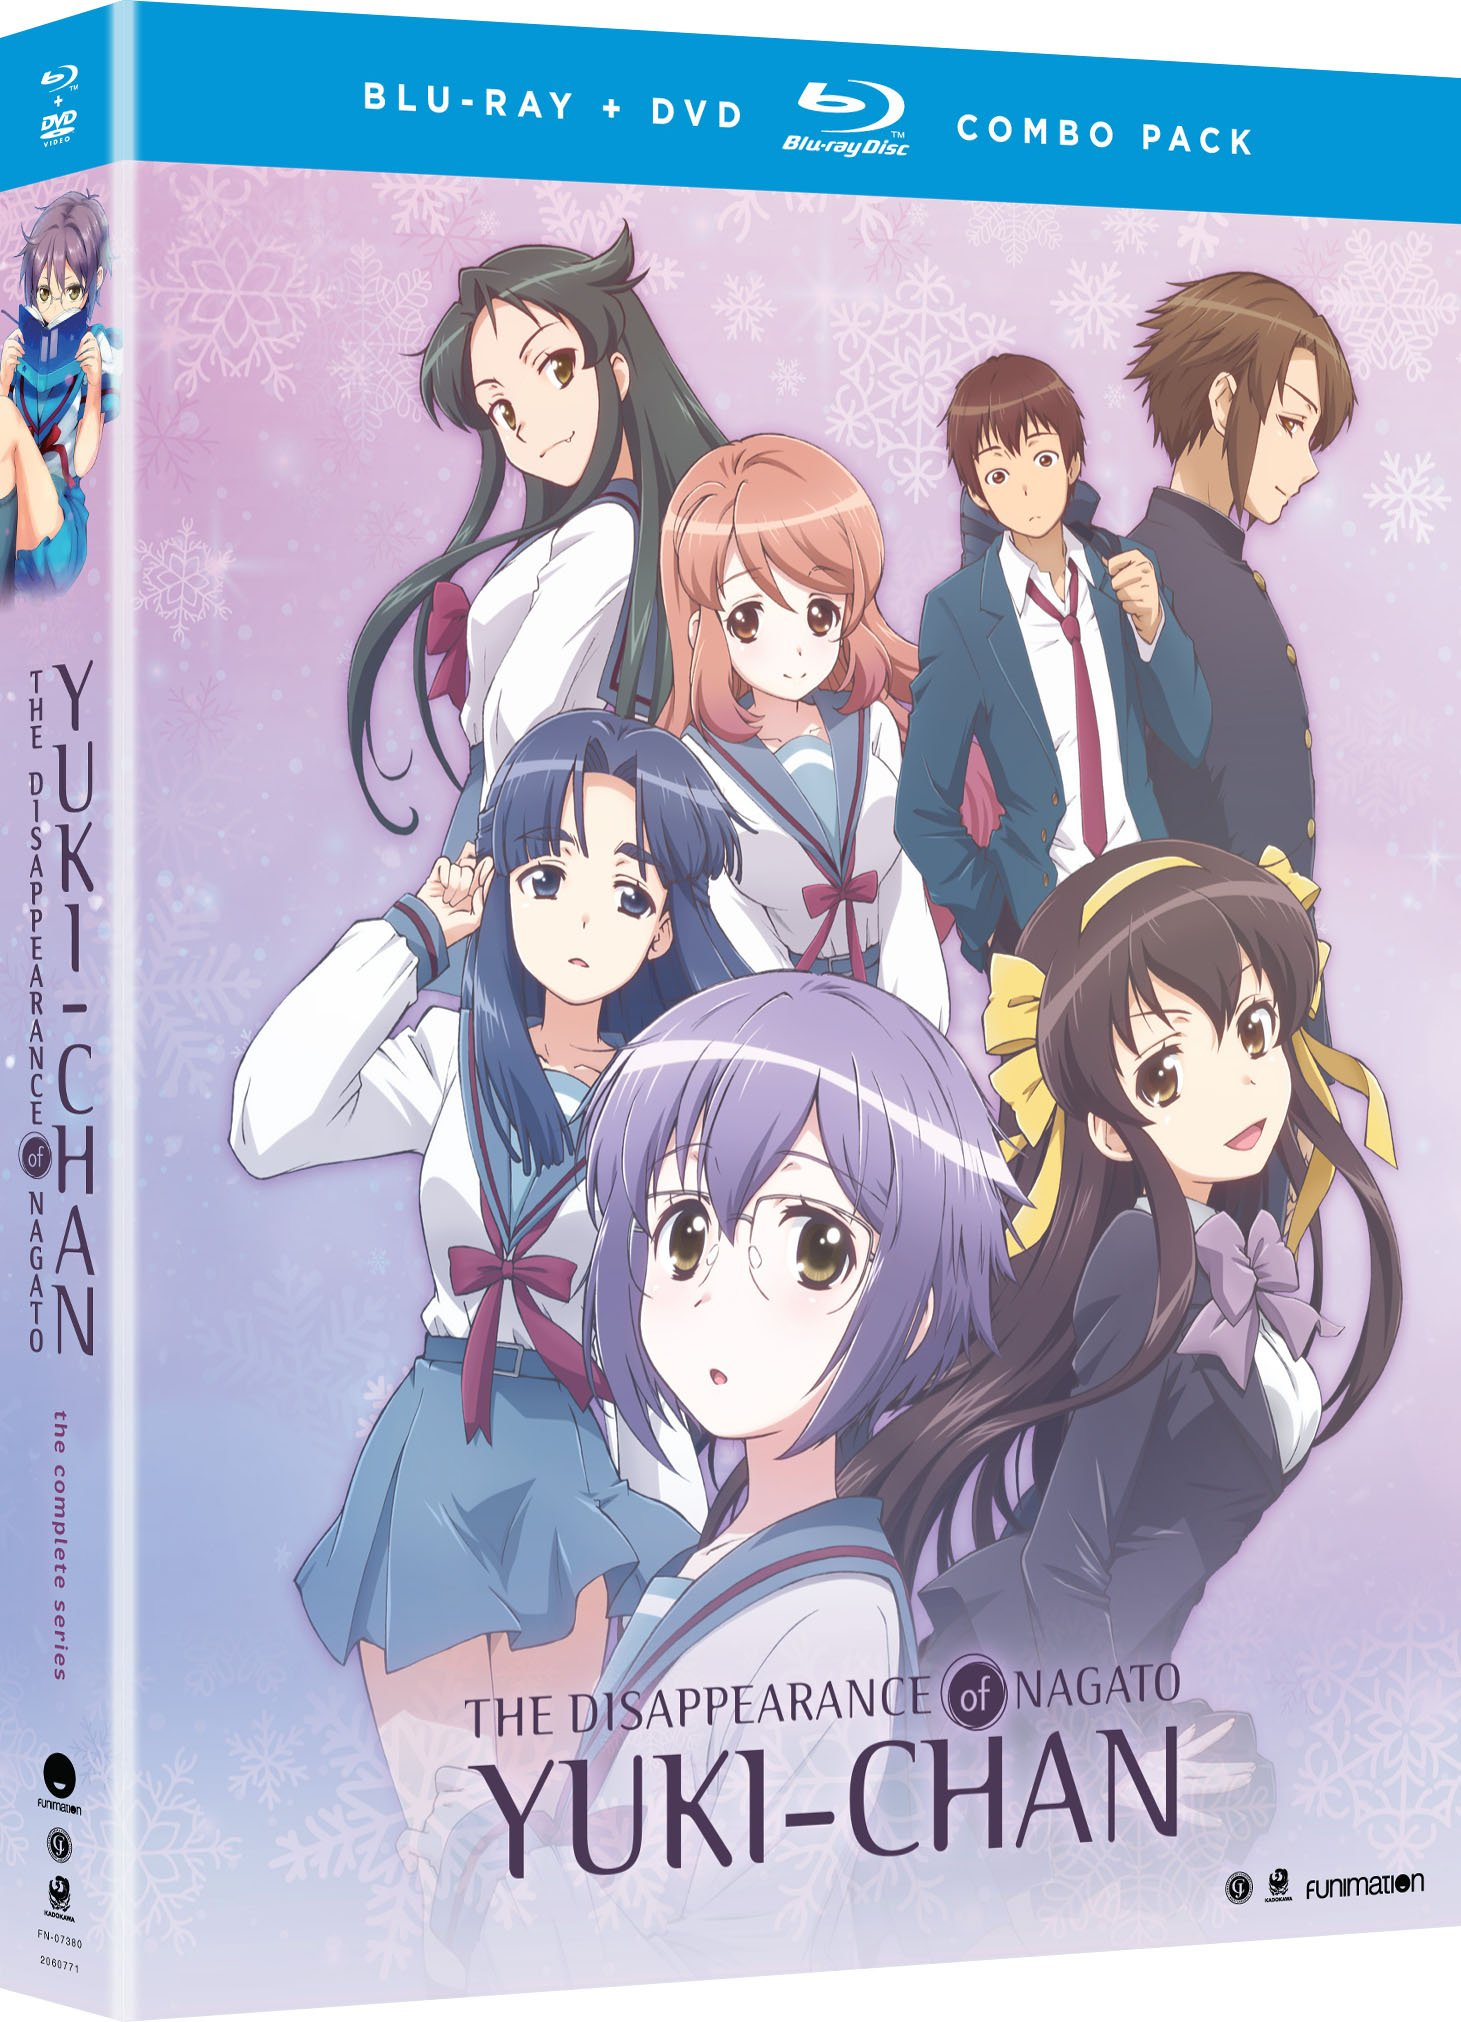 Blu-ray : The Disappearance Of Nagato Yuki-Chan: The Complete Series (With DVD, Boxed Set, 5 Disc)